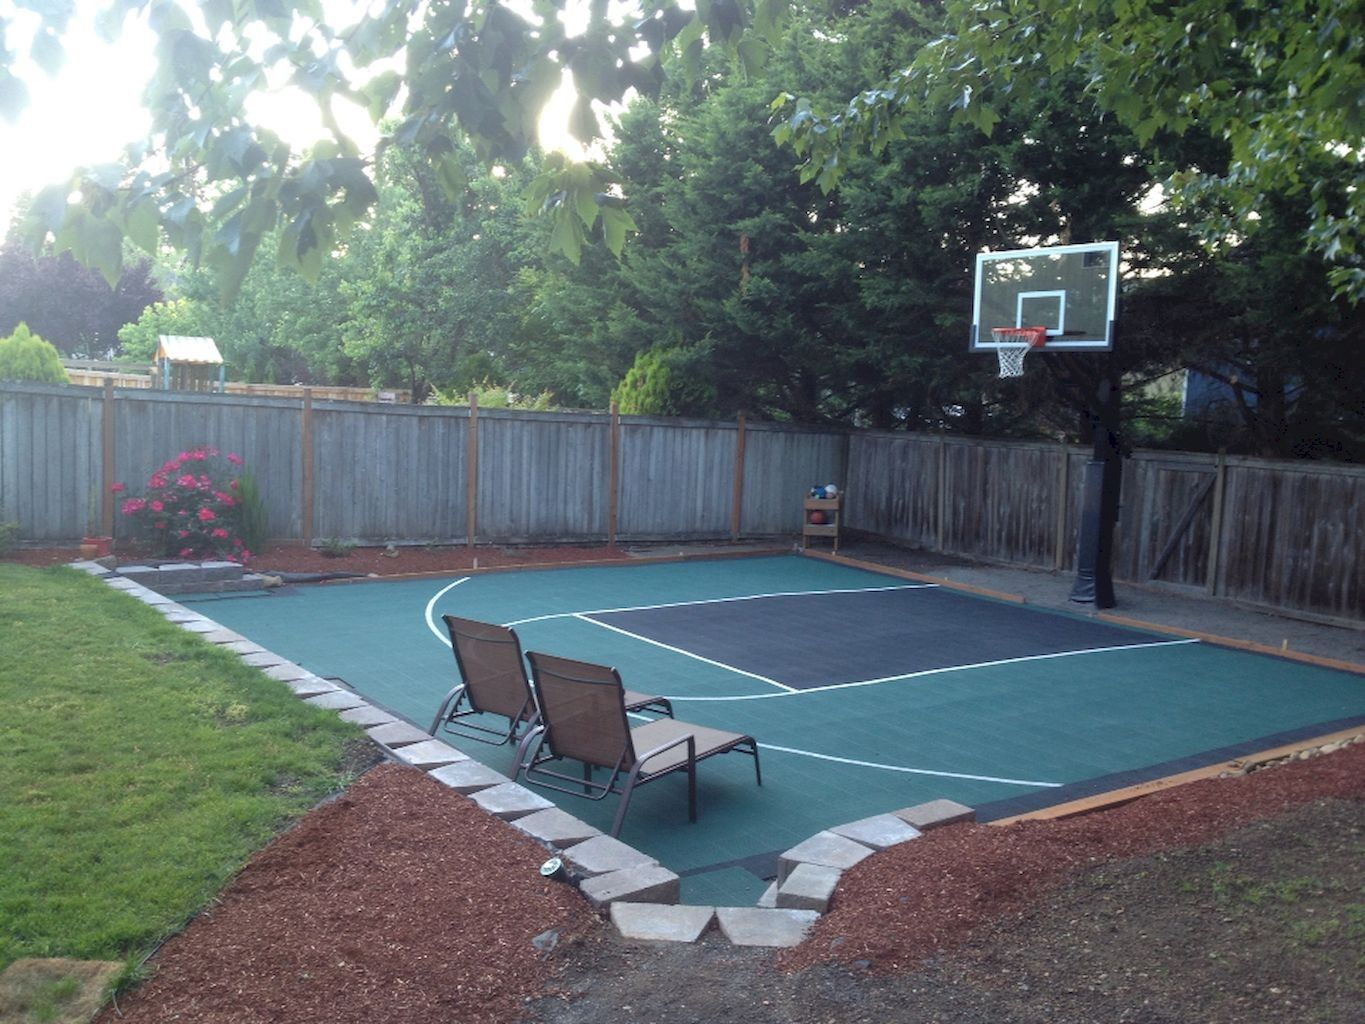 15.SIMPHOME.COM nice sport court backyard design ideas garden